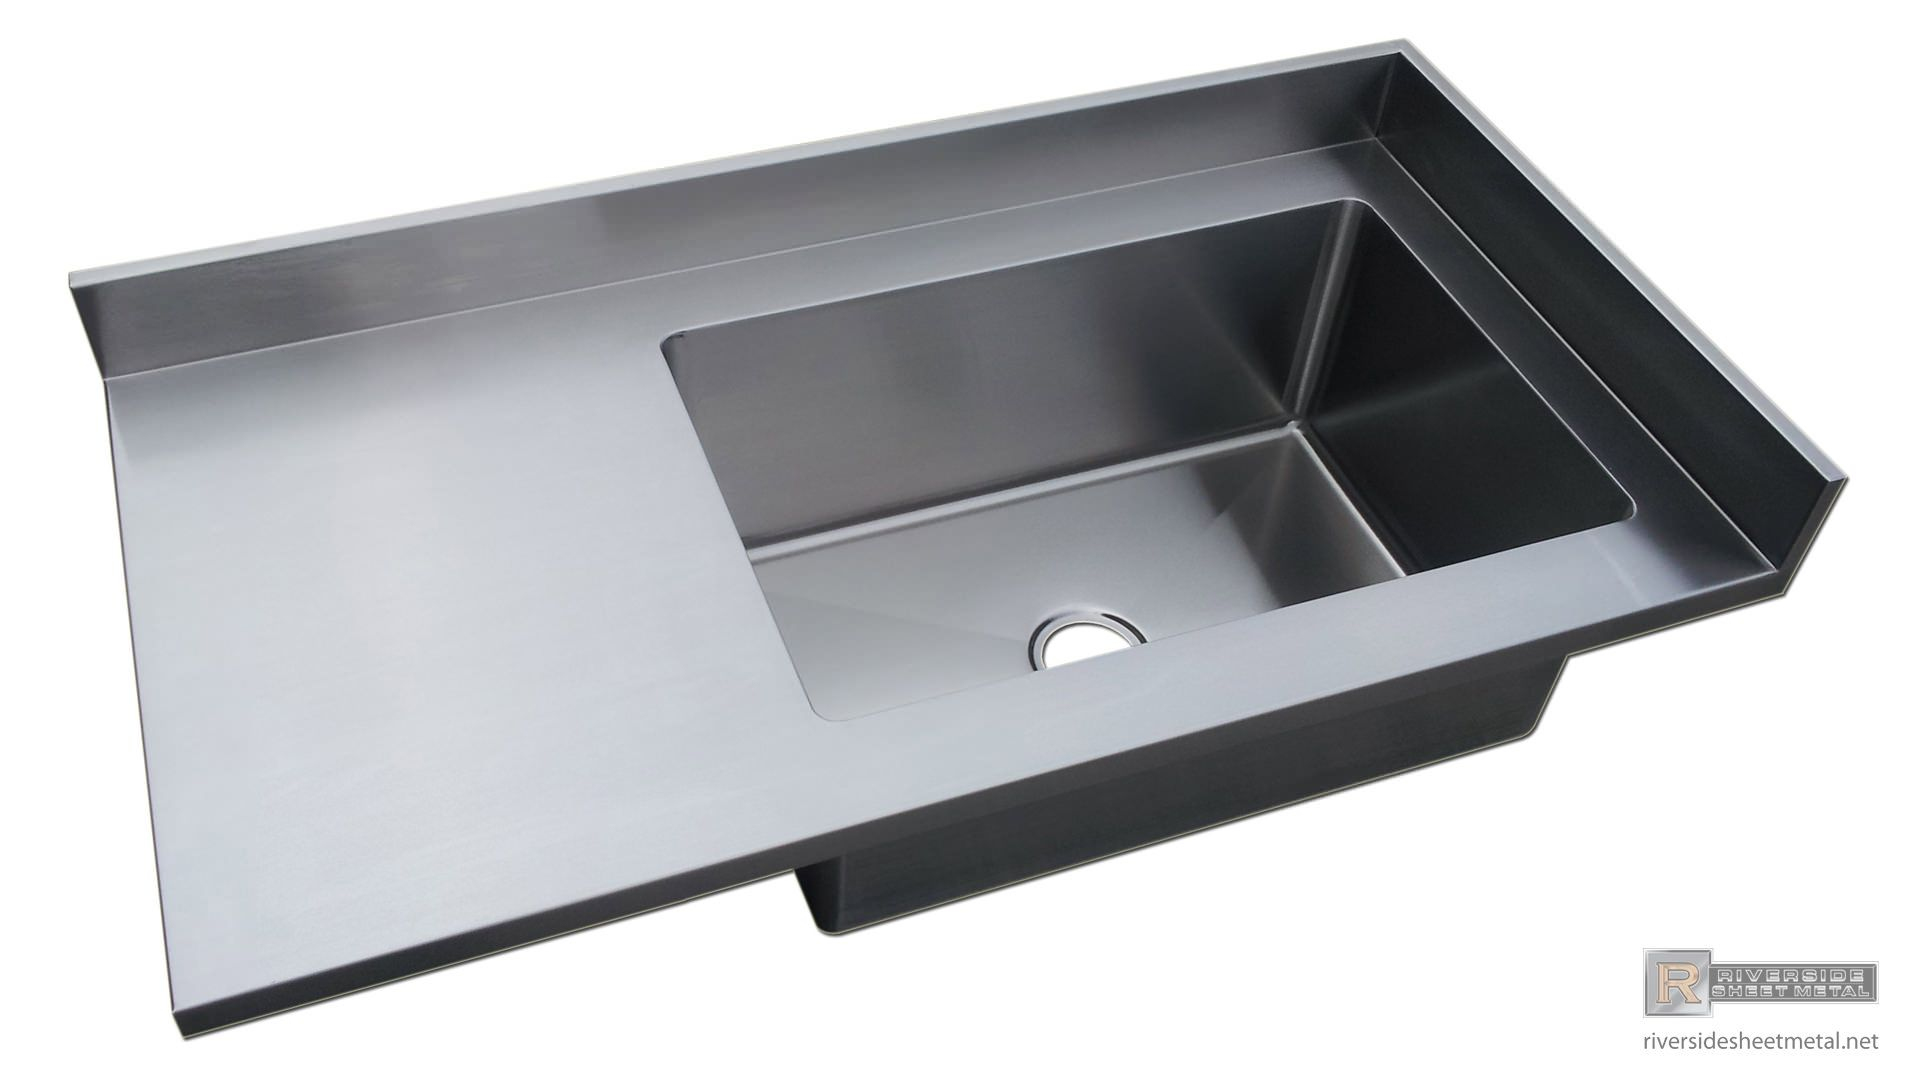 Superb Stainless Steel Counter With Sink | Stainless Steel Number 4 Finish Counter  Top With Integrated Sink And ... | Kitchen | Pinterest | Counter Tops,  Counter ...